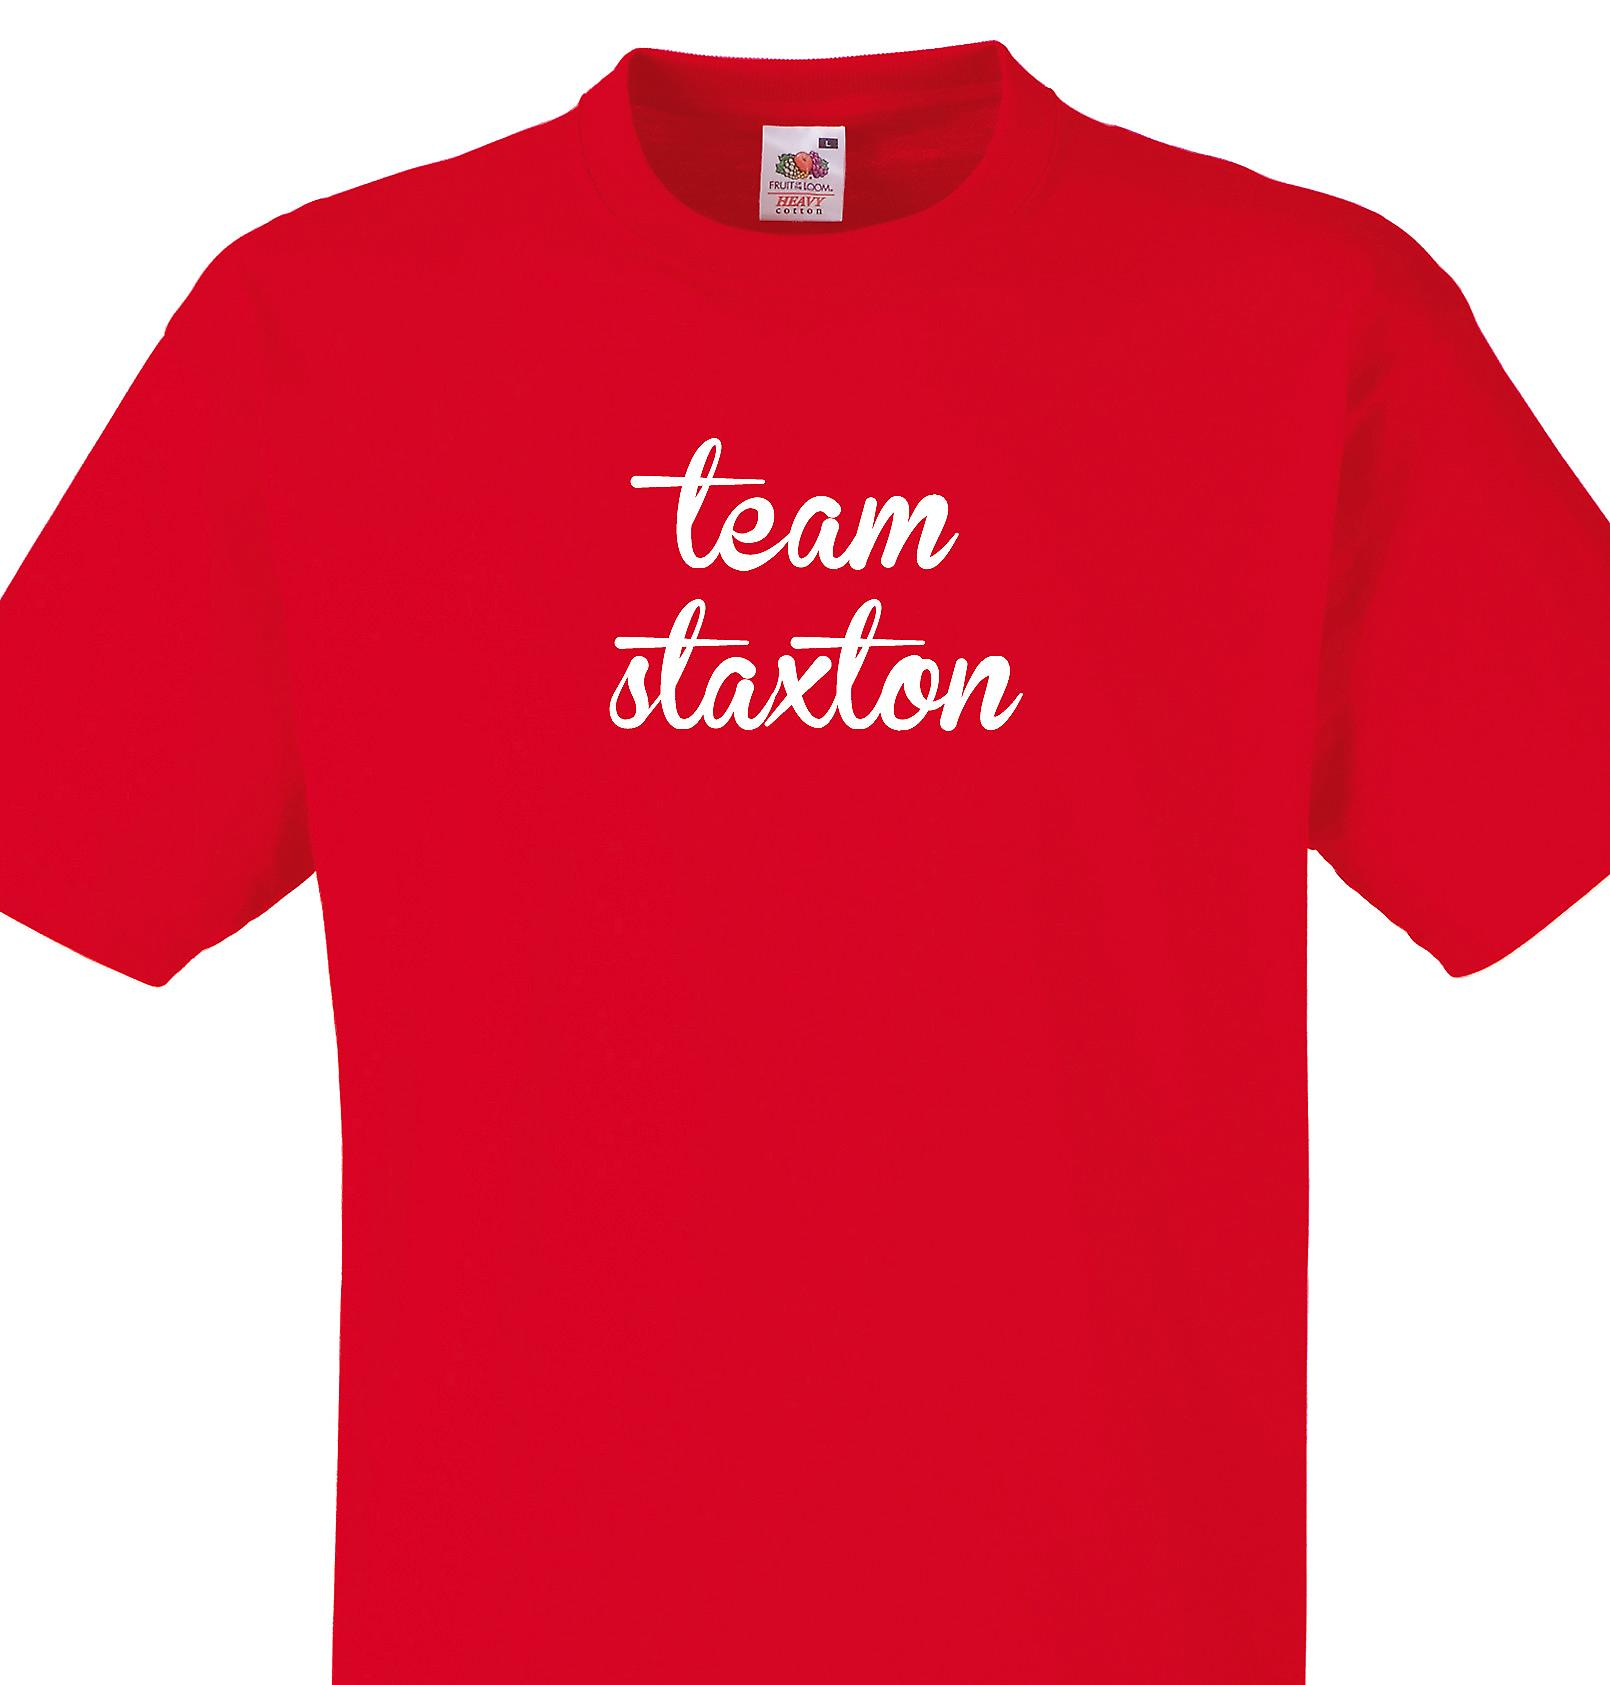 Team Staxton Red T shirt